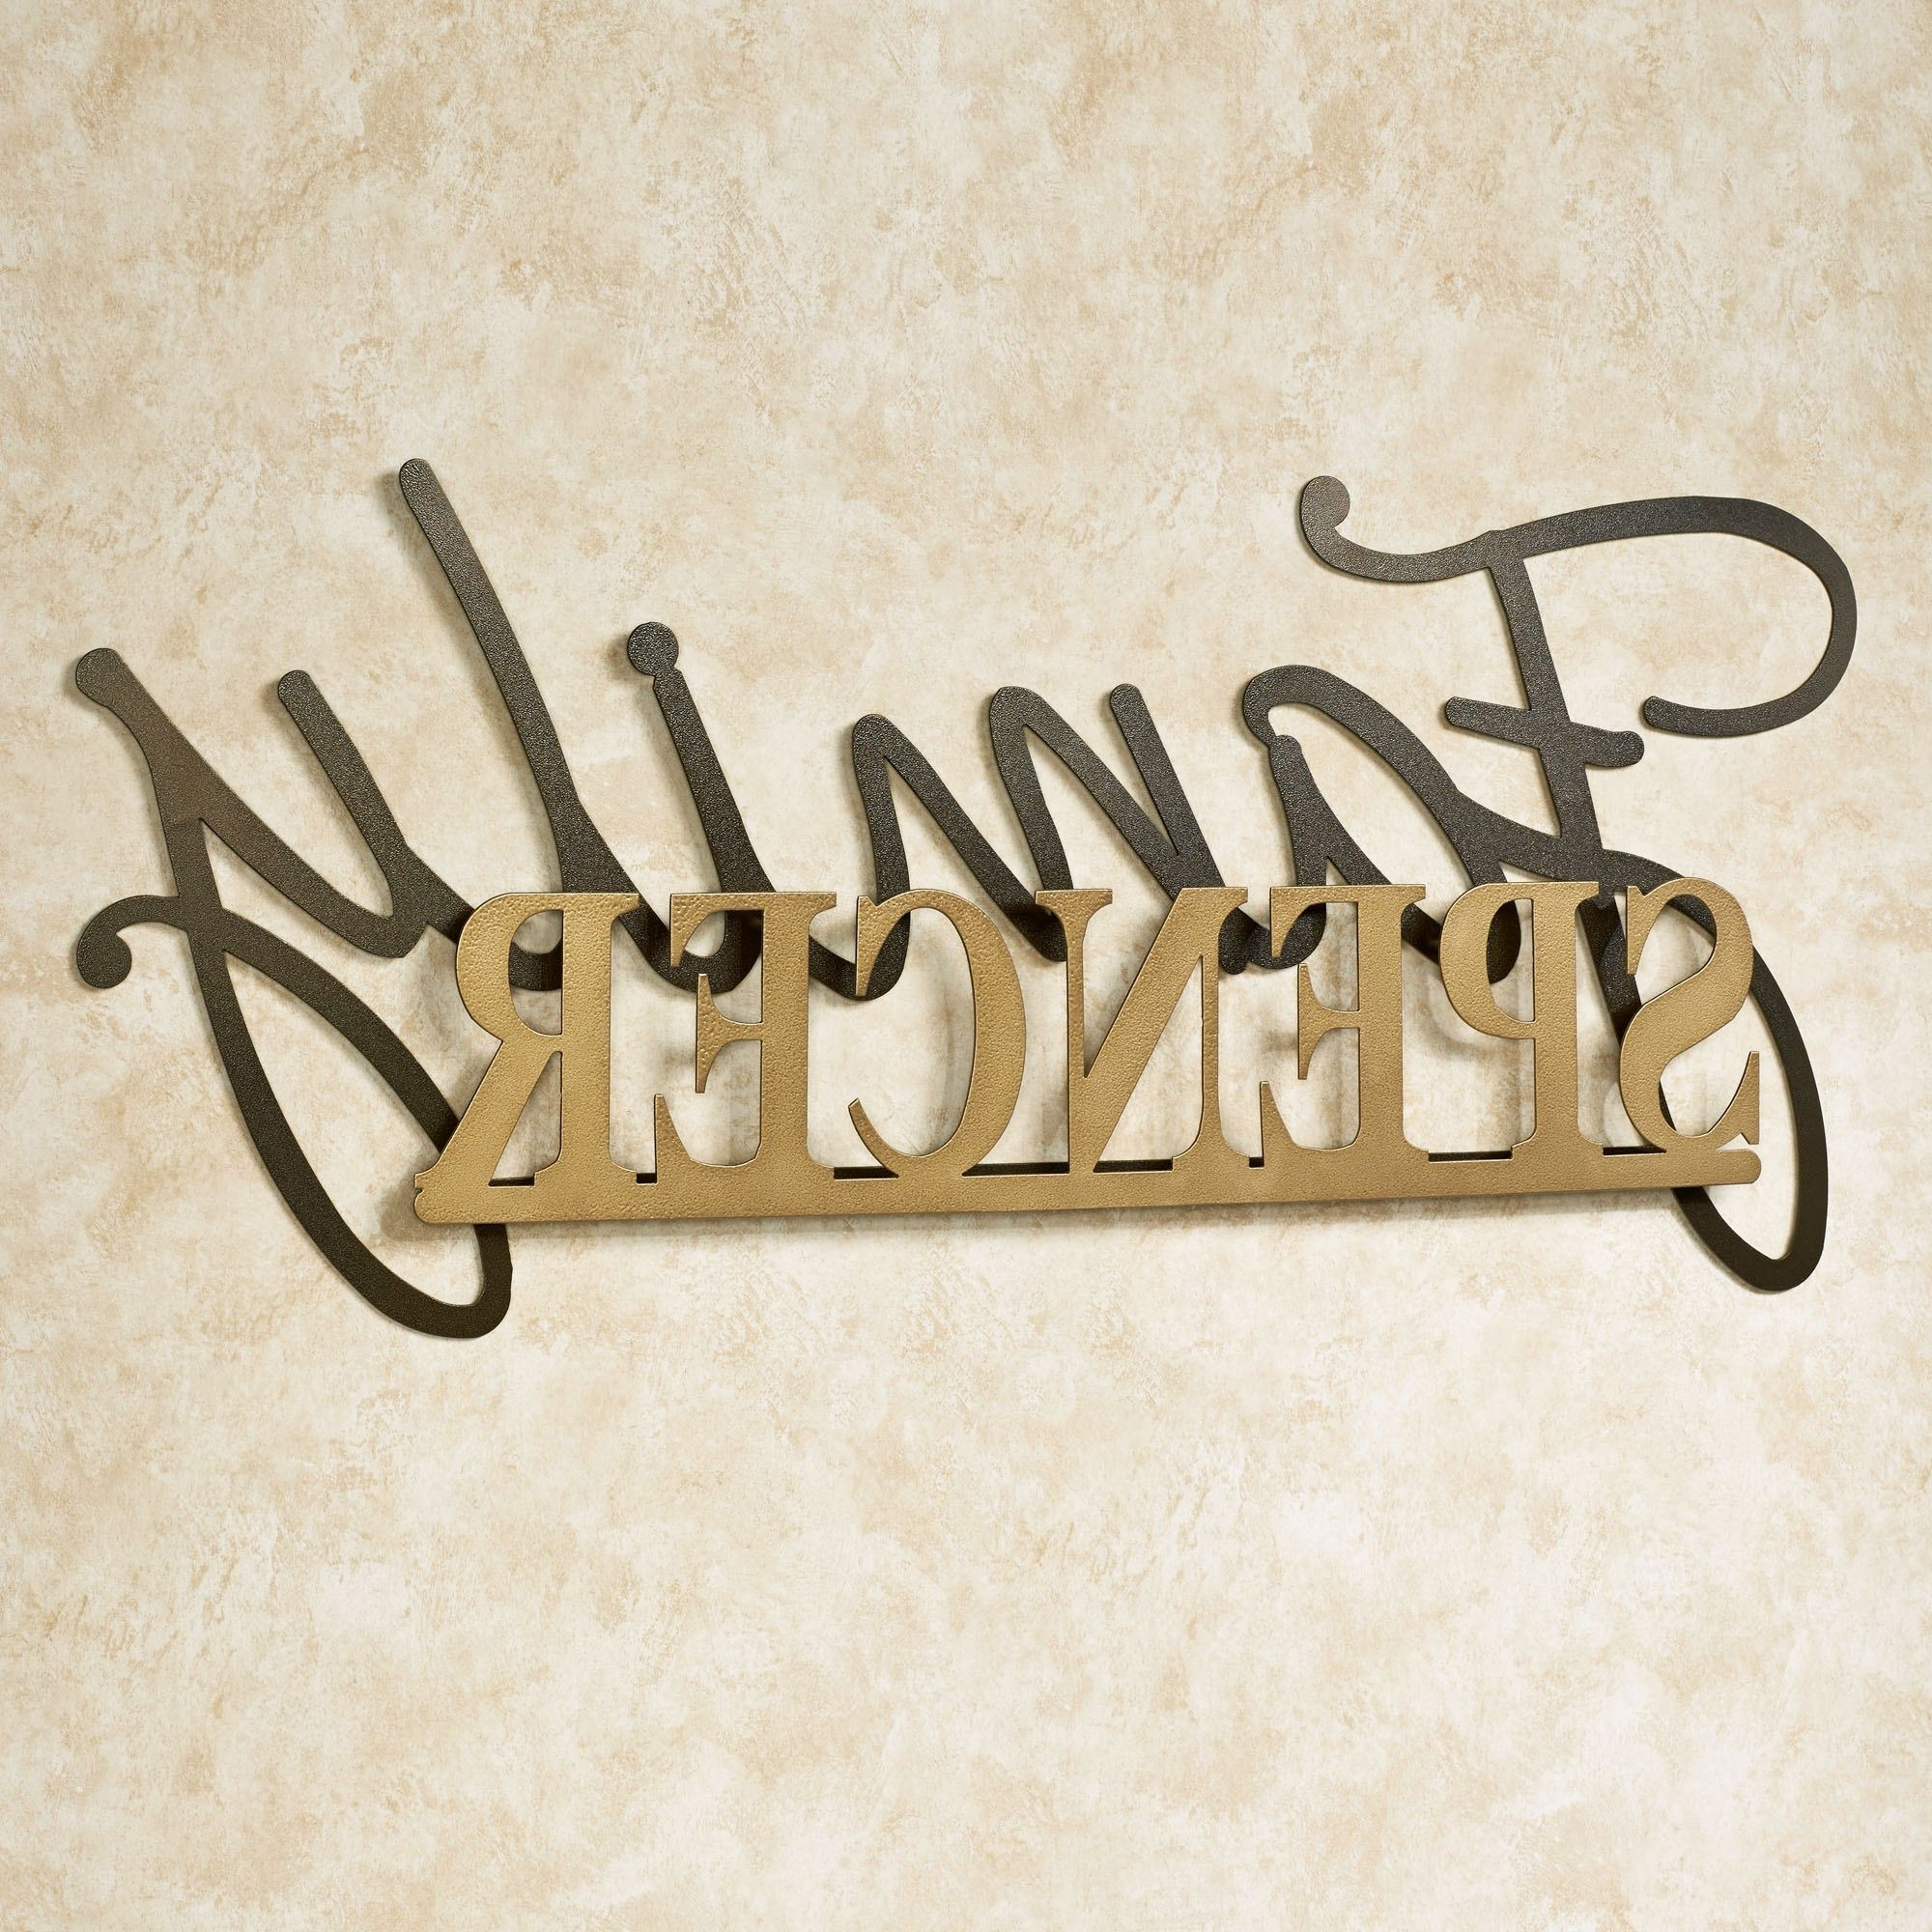 2018 Personalized Metal Wall Art Within Signature Personalized Metal Wall Art Signjasonw Studios (View 2 of 15)